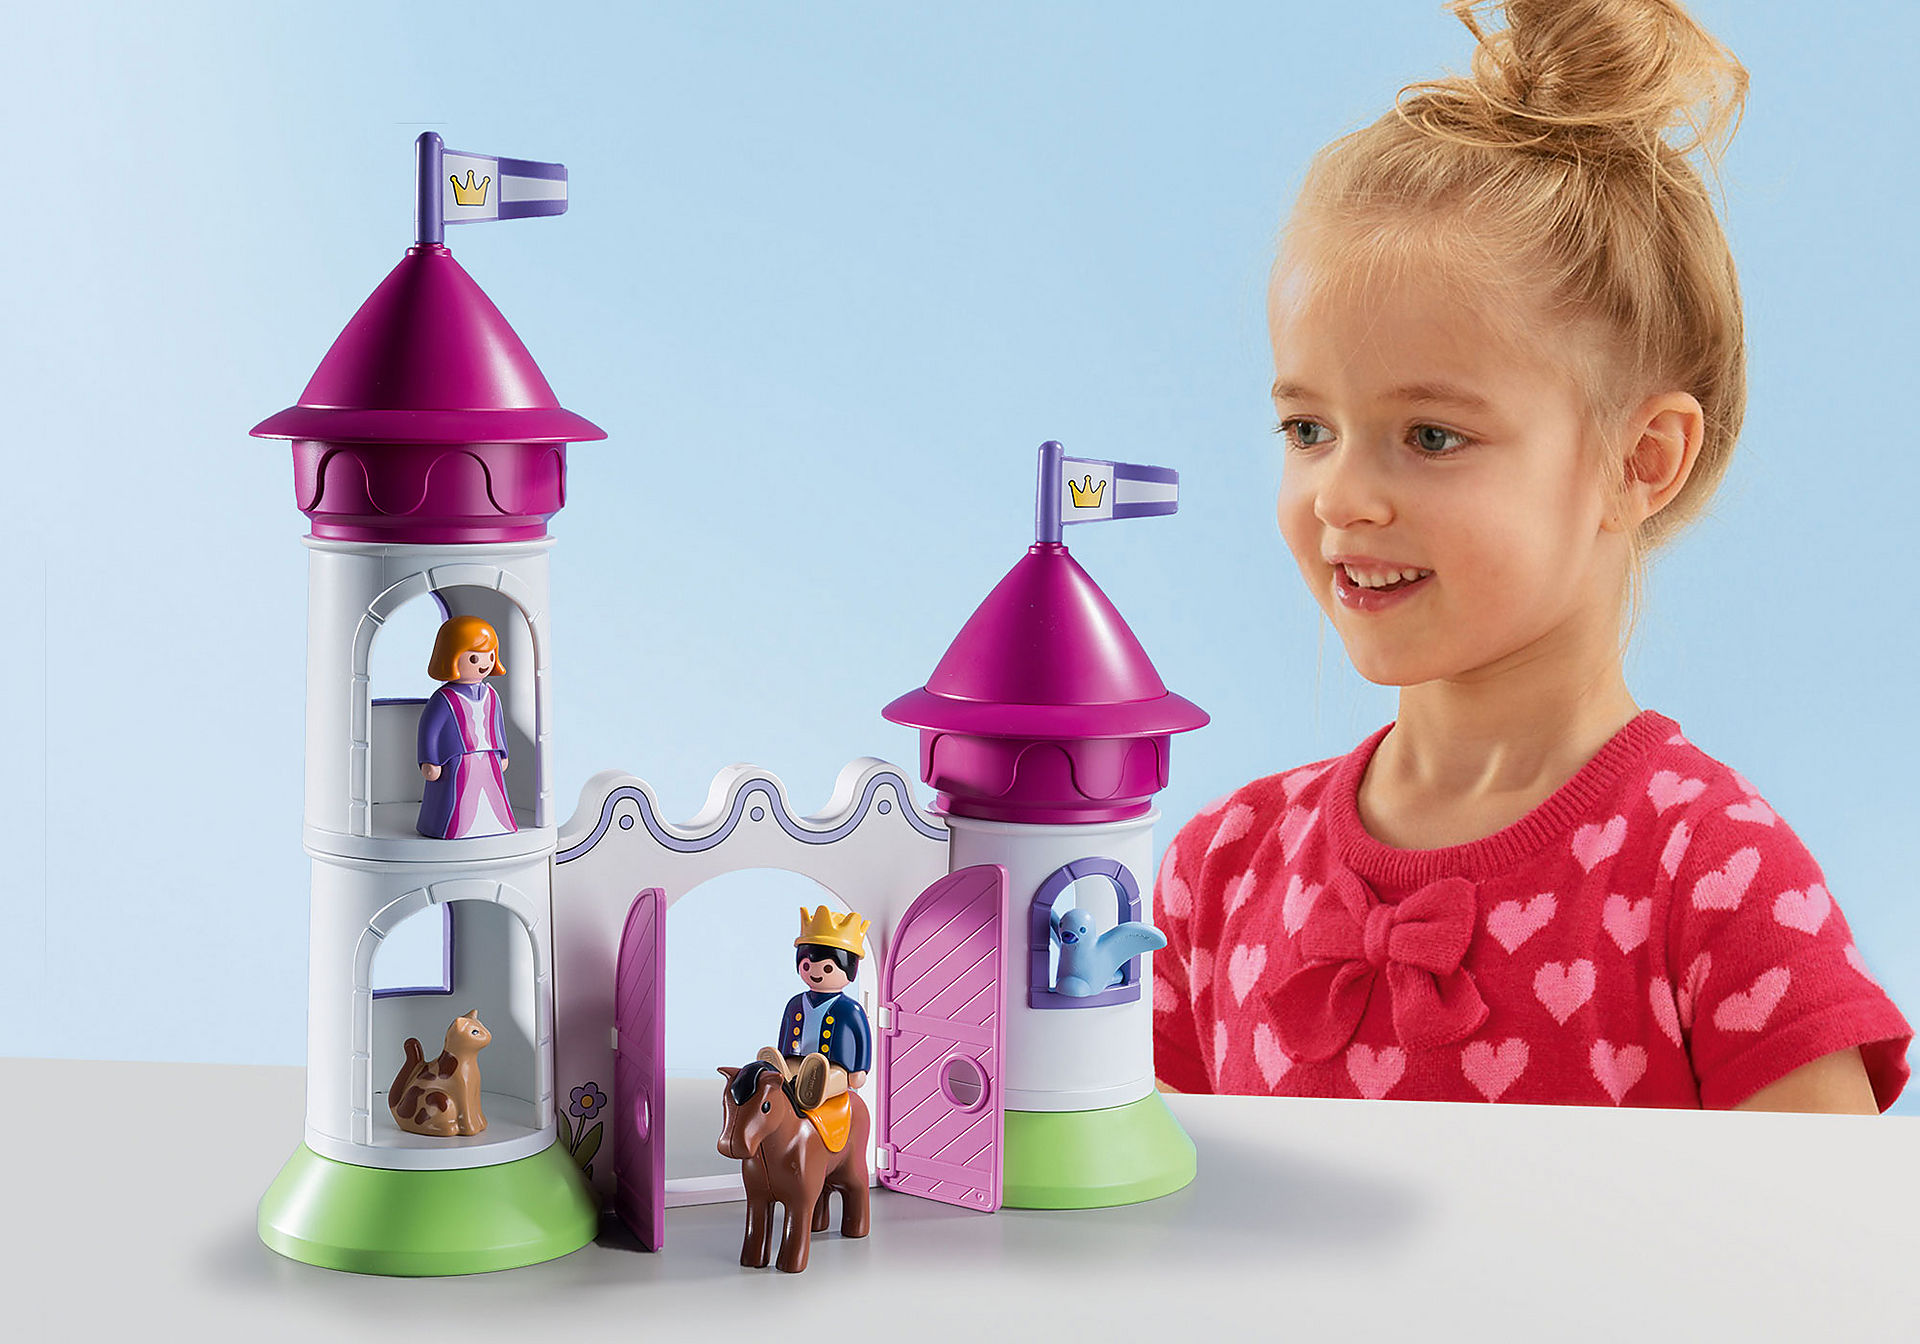 http://media.playmobil.com/i/playmobil/9389_product_extra1/1.2.3 Castillo con Torre Apilable